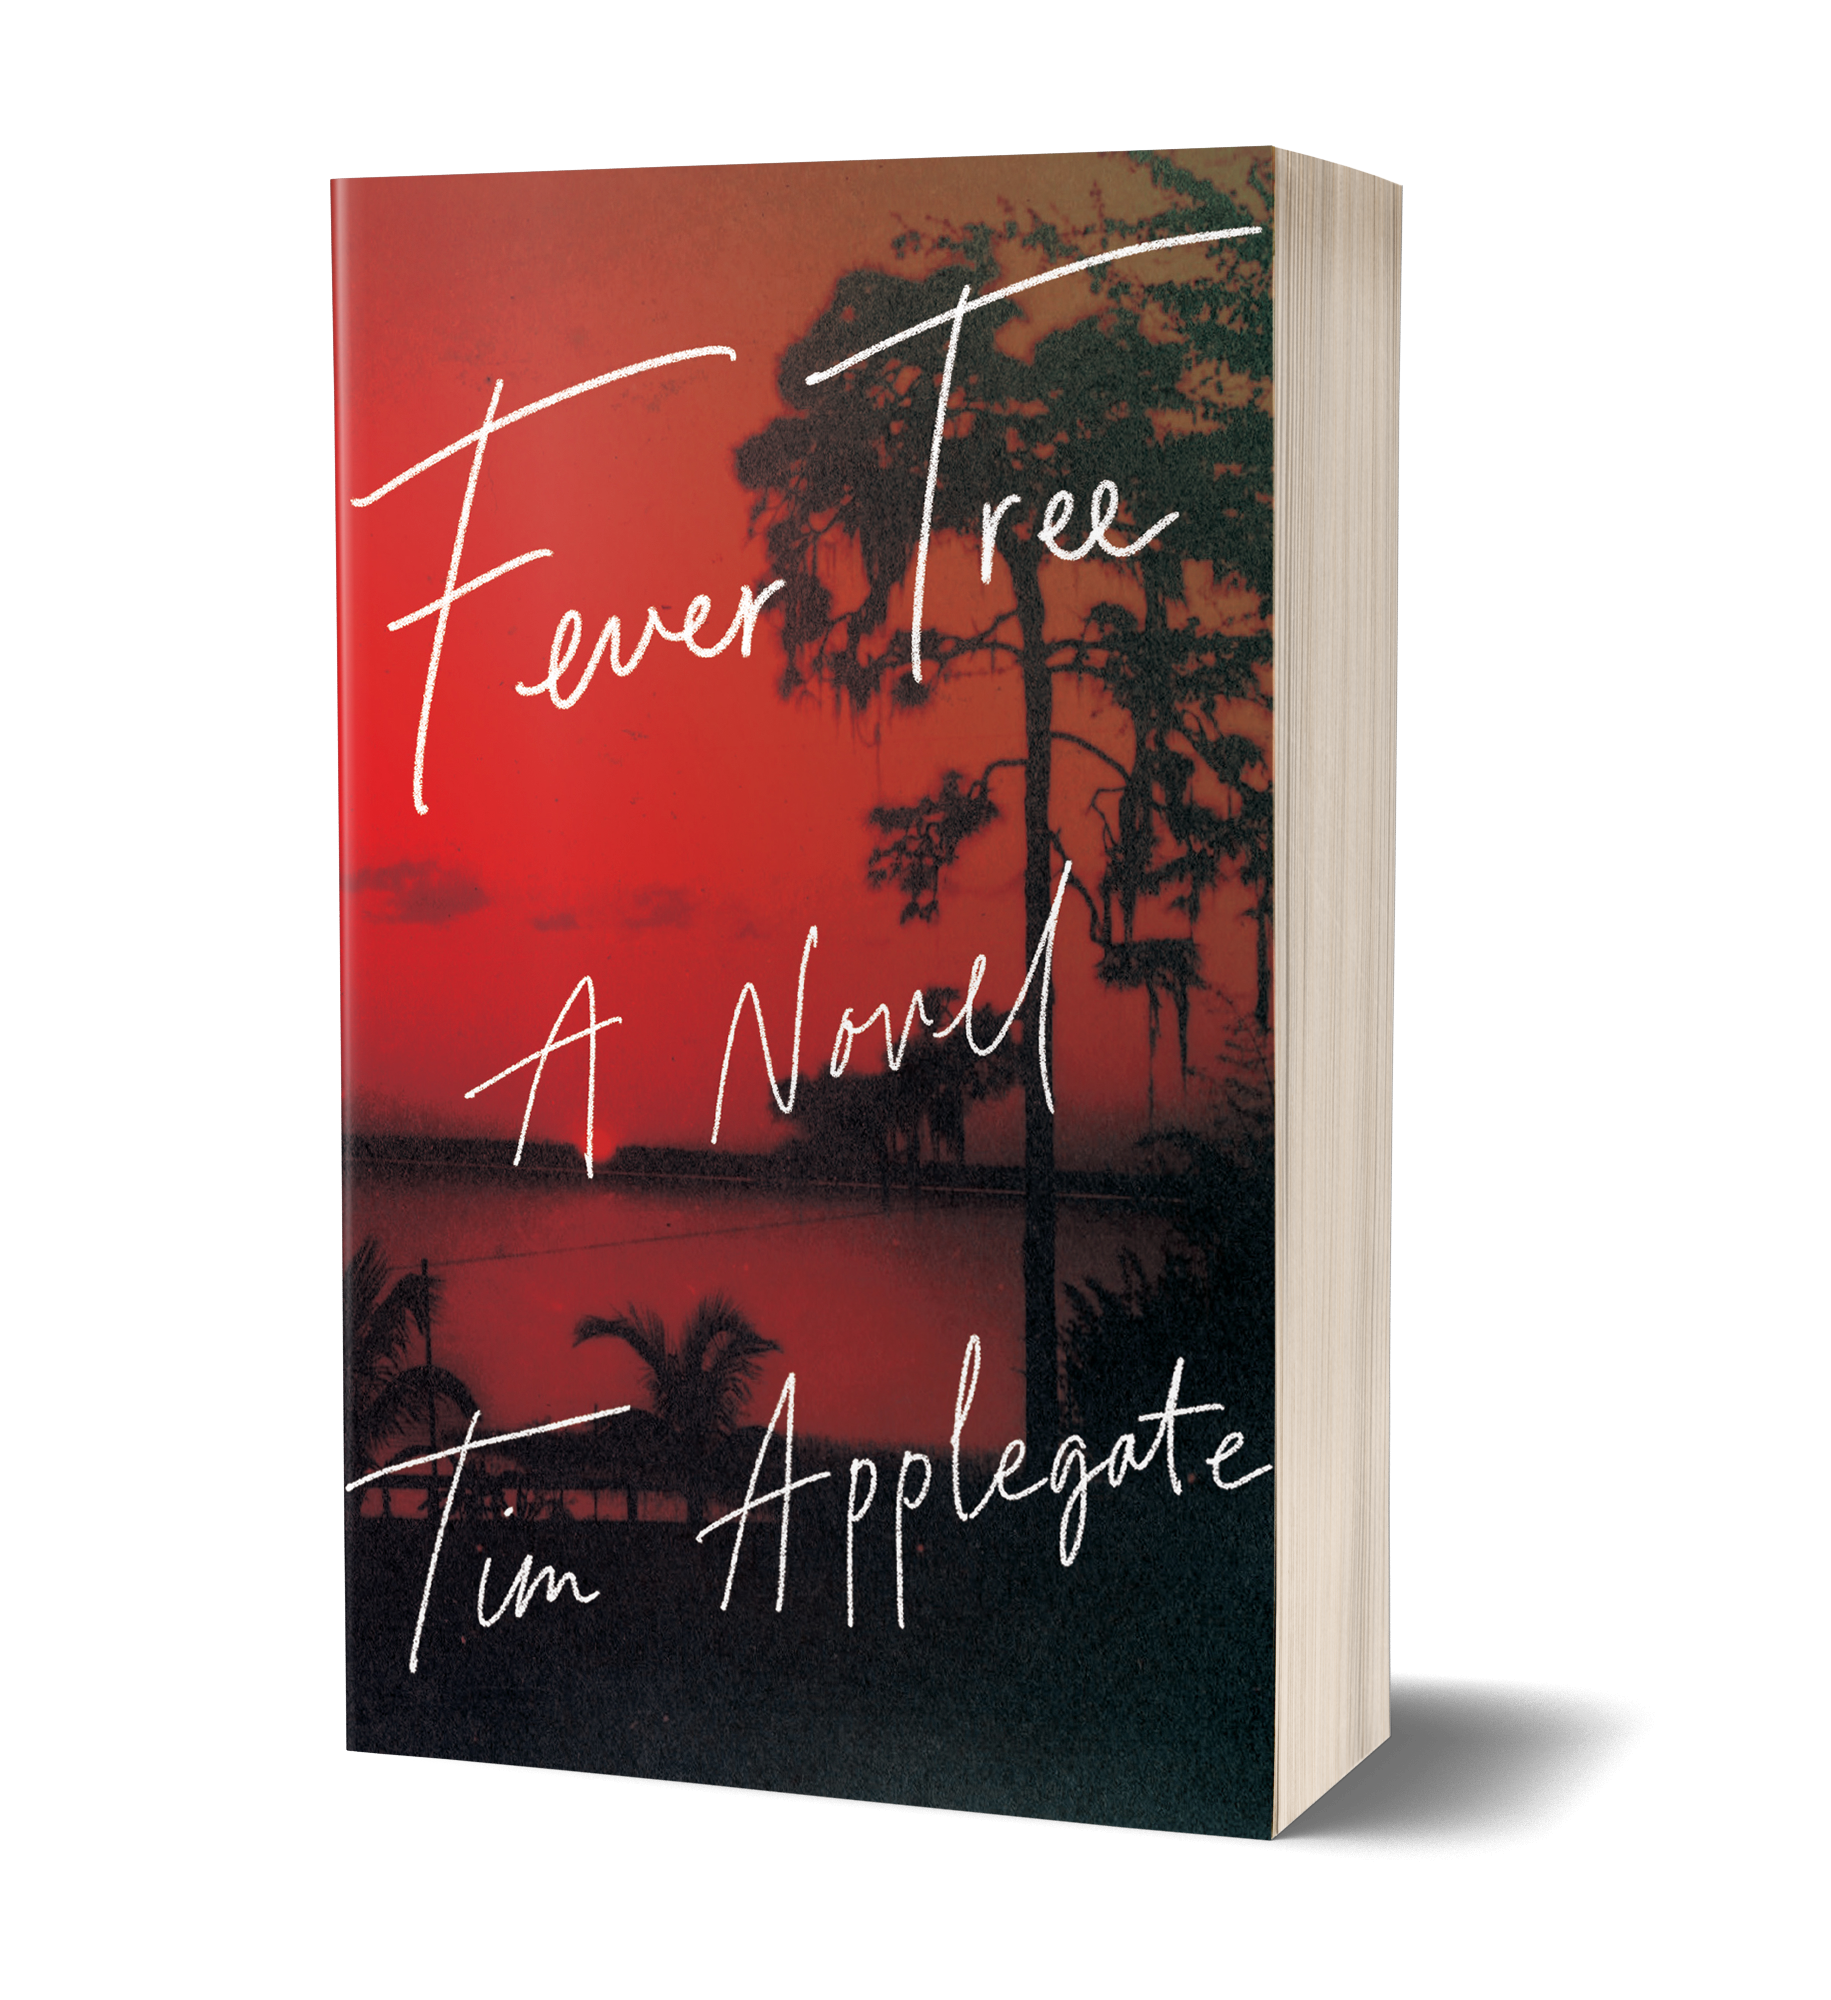 Fever Tree Book cover, red skyline, dark trees casting shadows in foreground